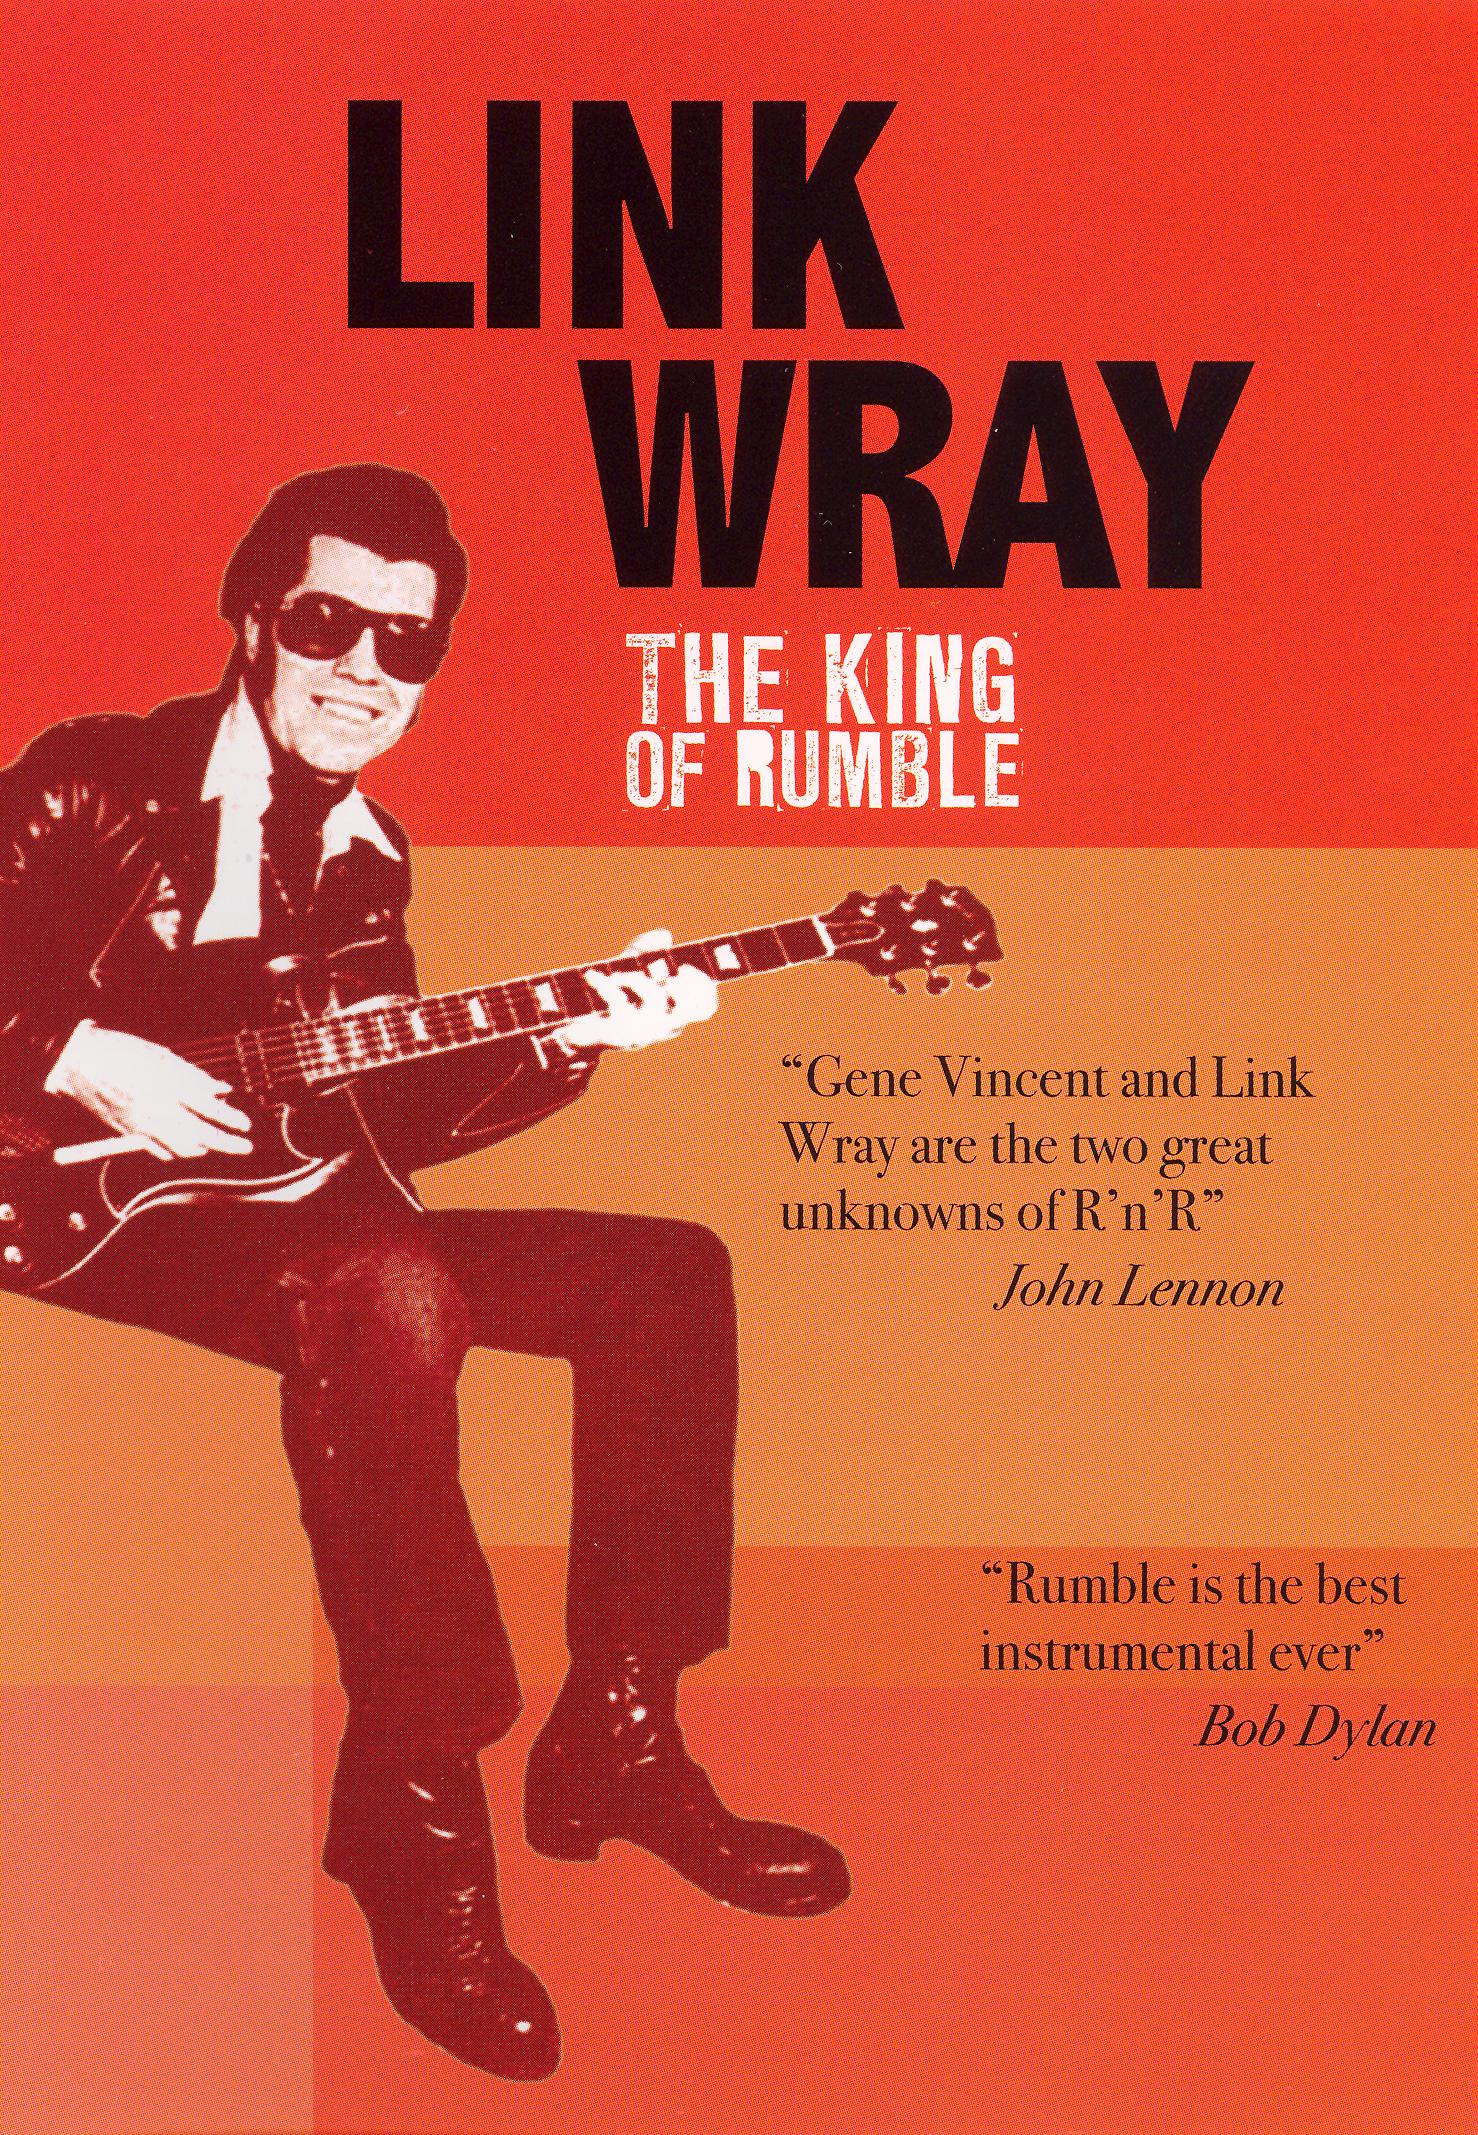 Link Wray: The King of Rumble